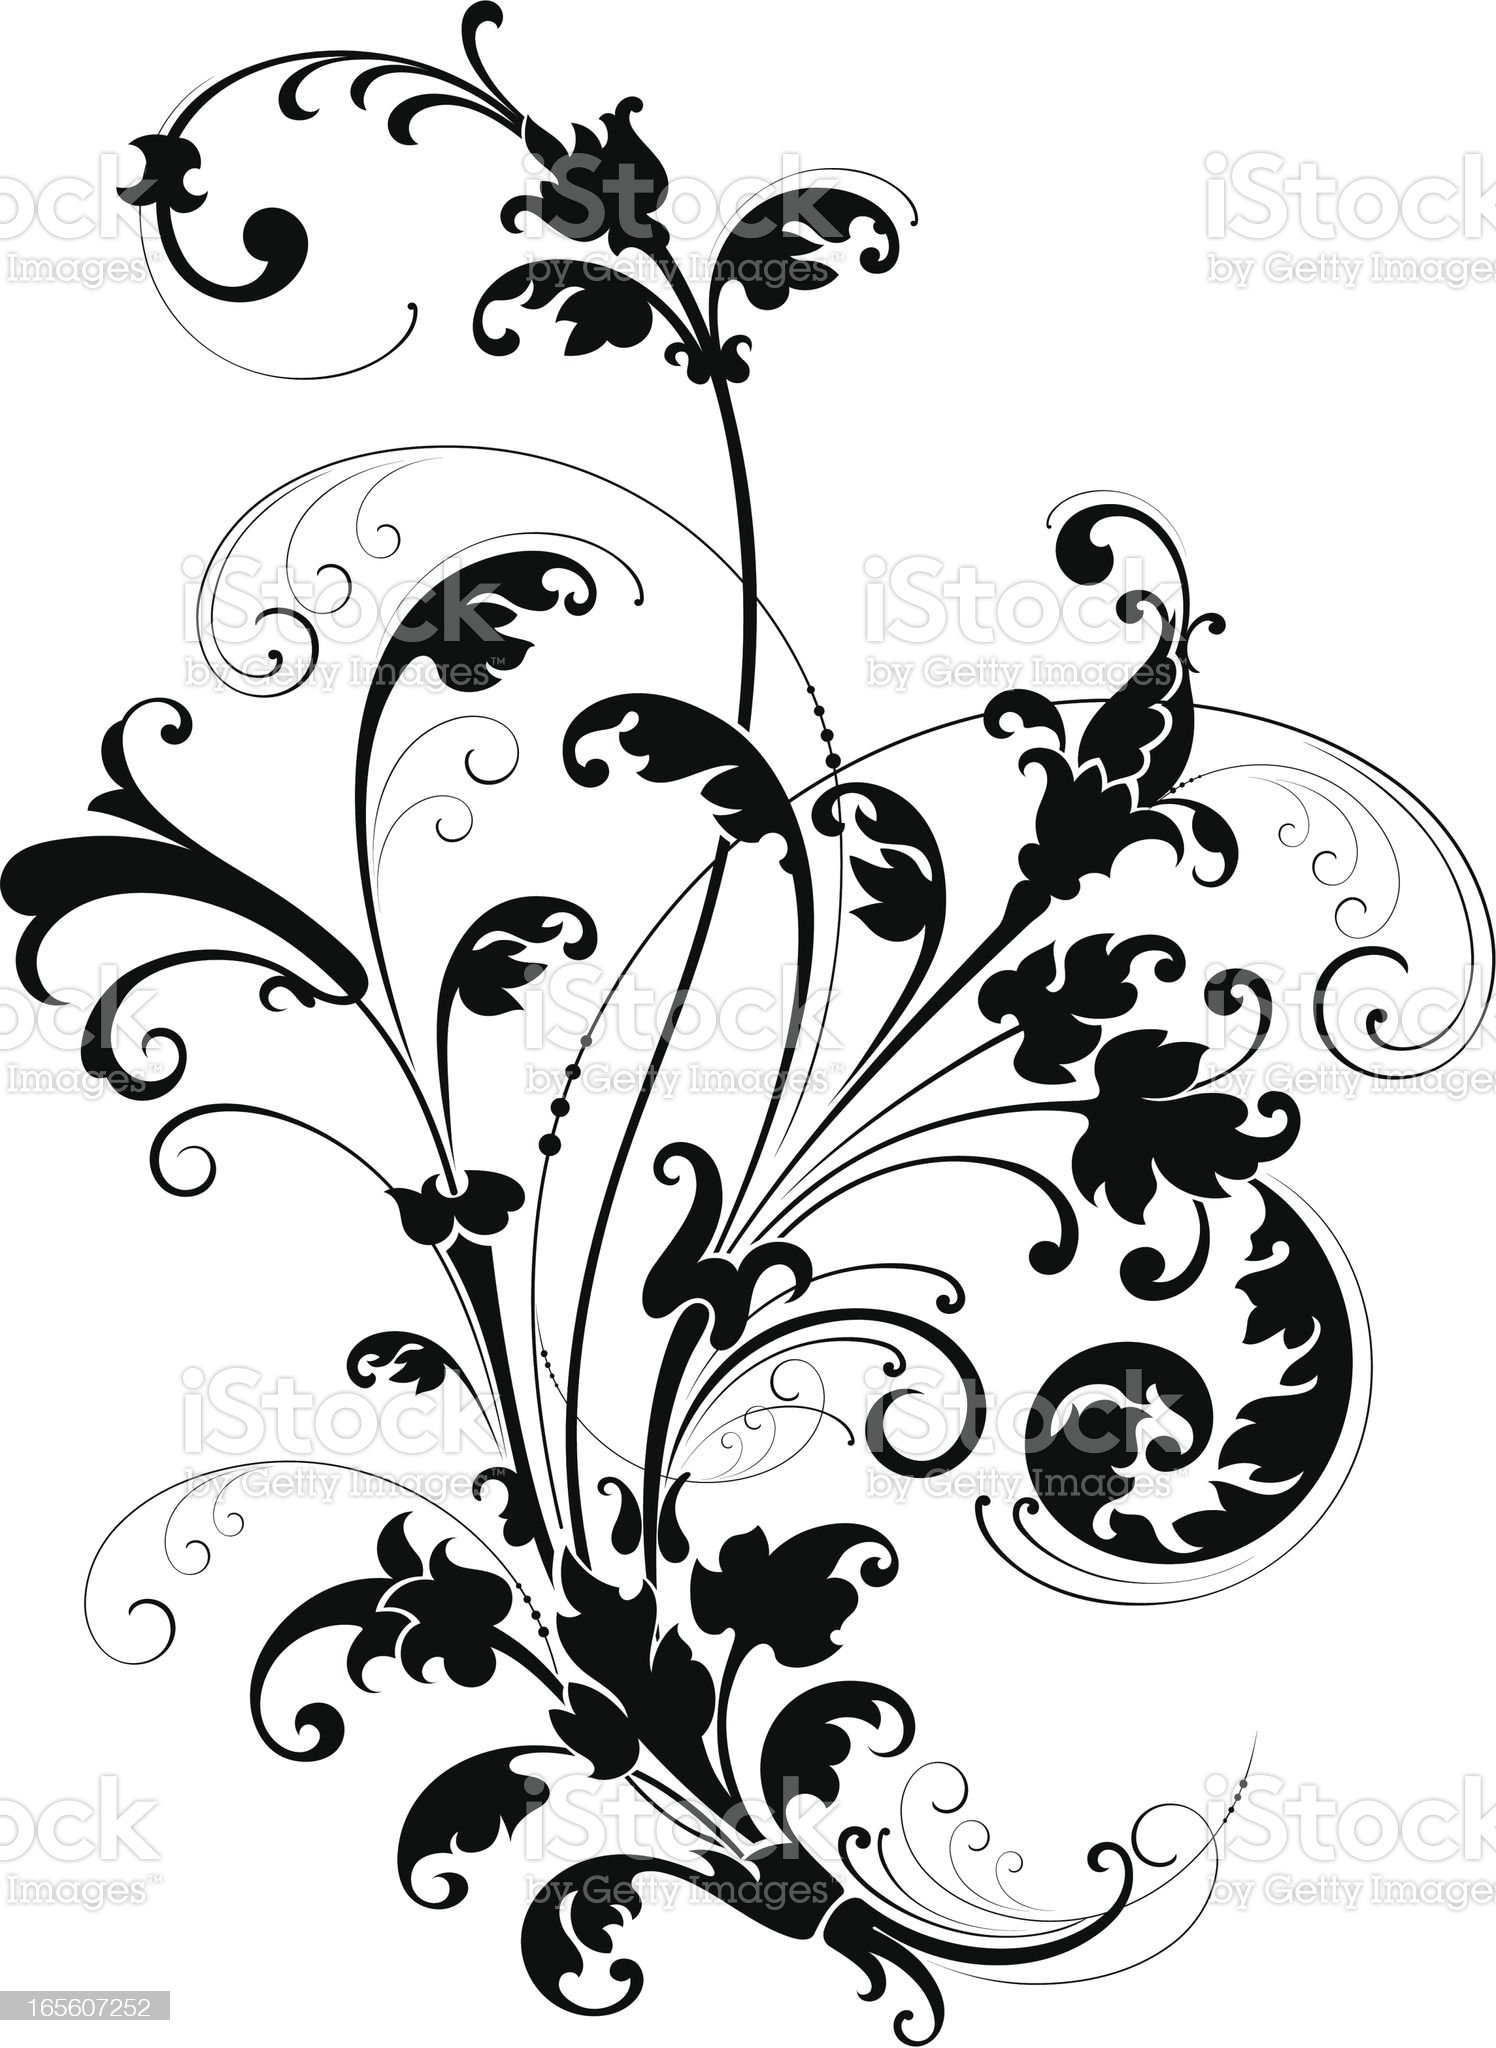 Decorative Floral Scroll royalty-free stock vector art